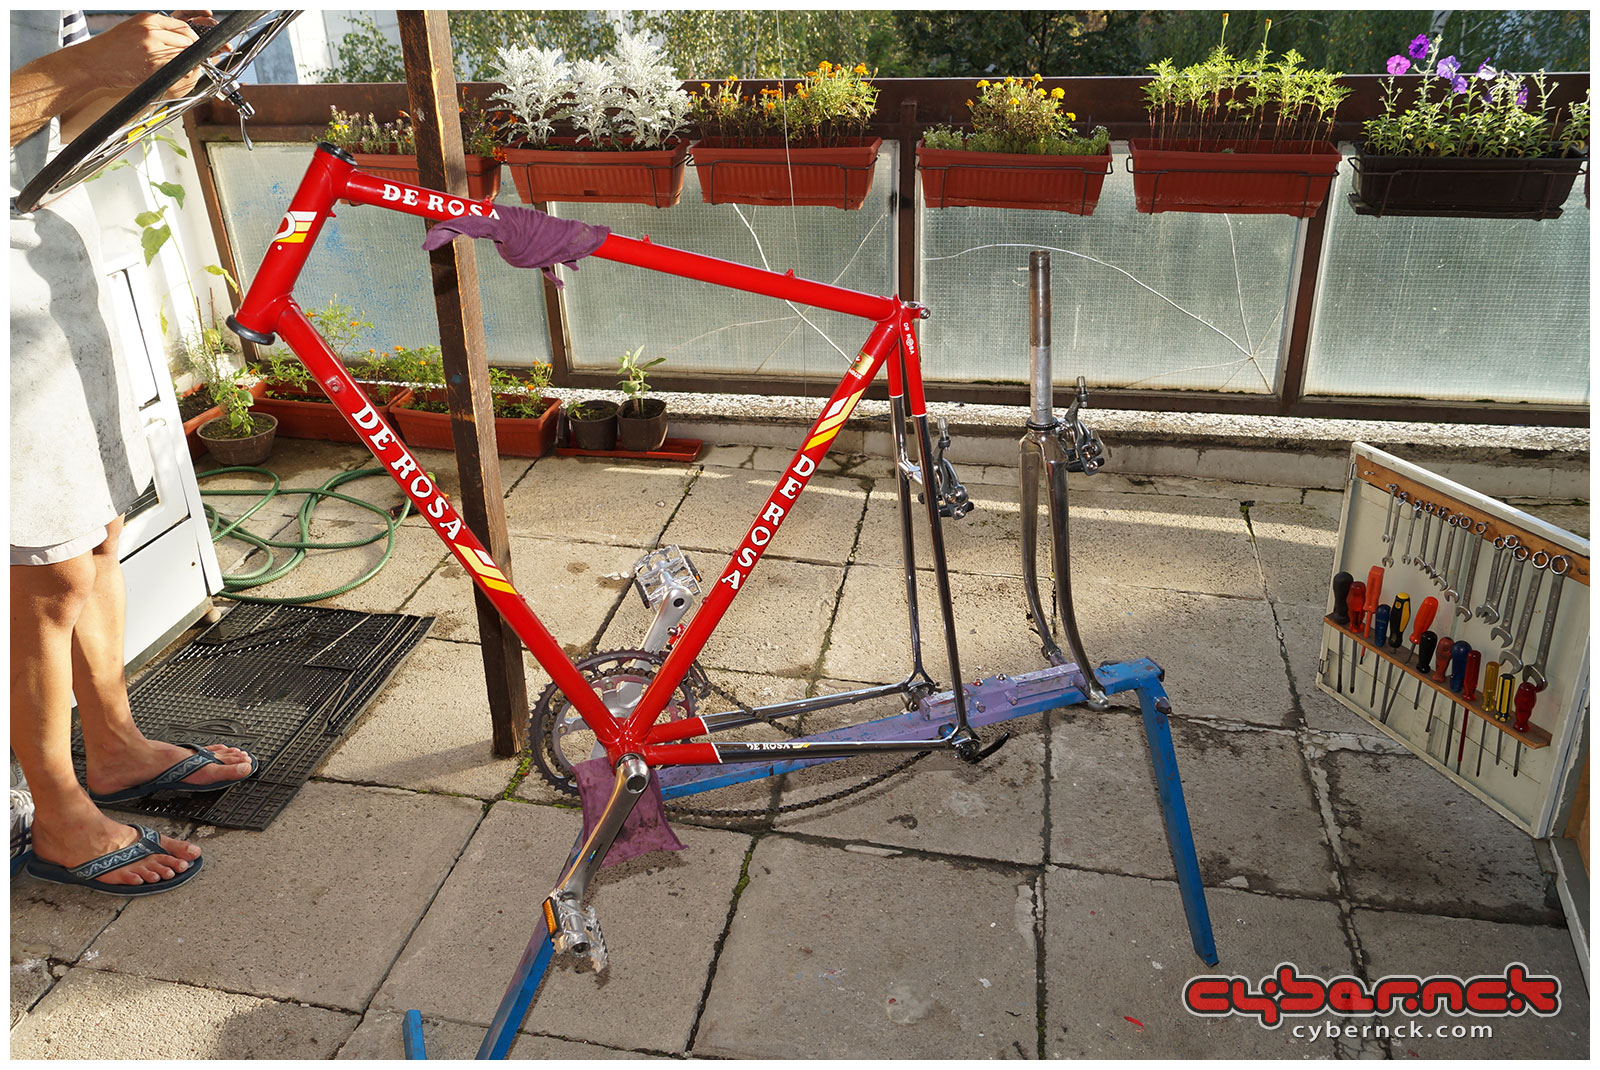 The next bike that had come along was to become the crown jewel of my collection - 1985-ish De Rosa Professional SLX unfinished project. I instantly fell in love with it!